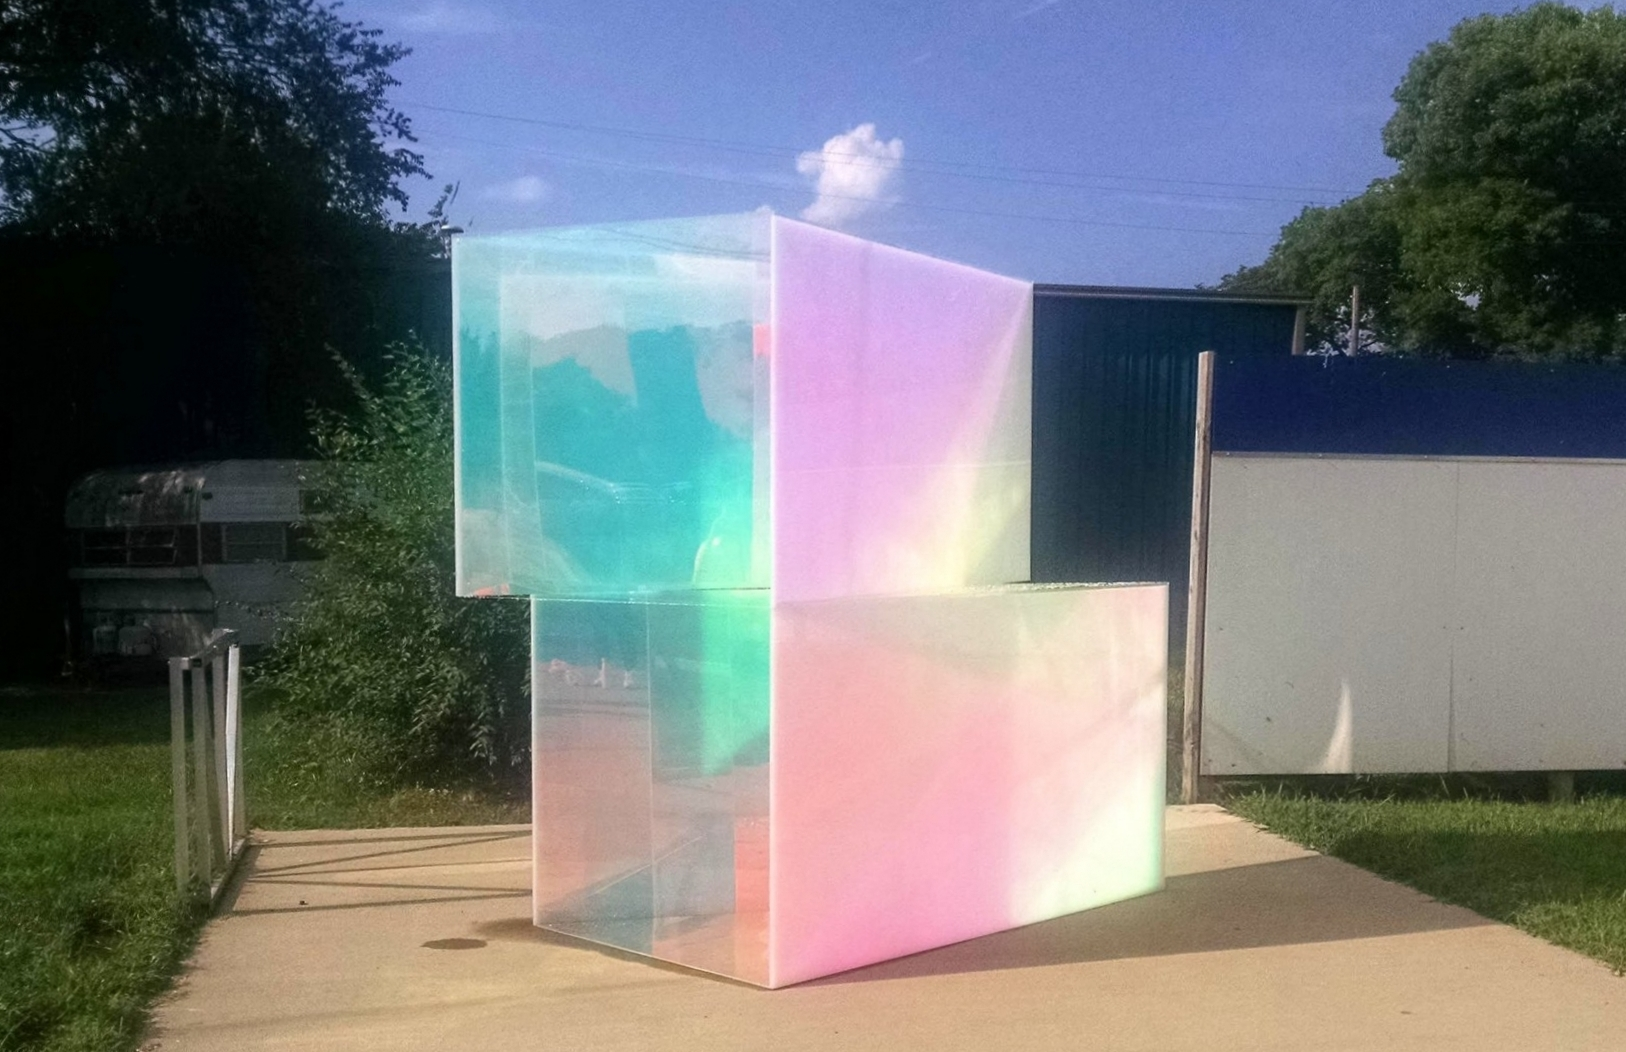 """Special Housing Unit (S.H.U.) by Marcus Manganni  Clear Acrylic, White Acrylic, and Dichroic Film. Installed late July 2018.  """"Best Outdoor Sculpture"""" 2018. Find write-up  HERE .  NOTE: Unfortunately this piece was irreparably damaged late November 2018 and is no longer viewable."""